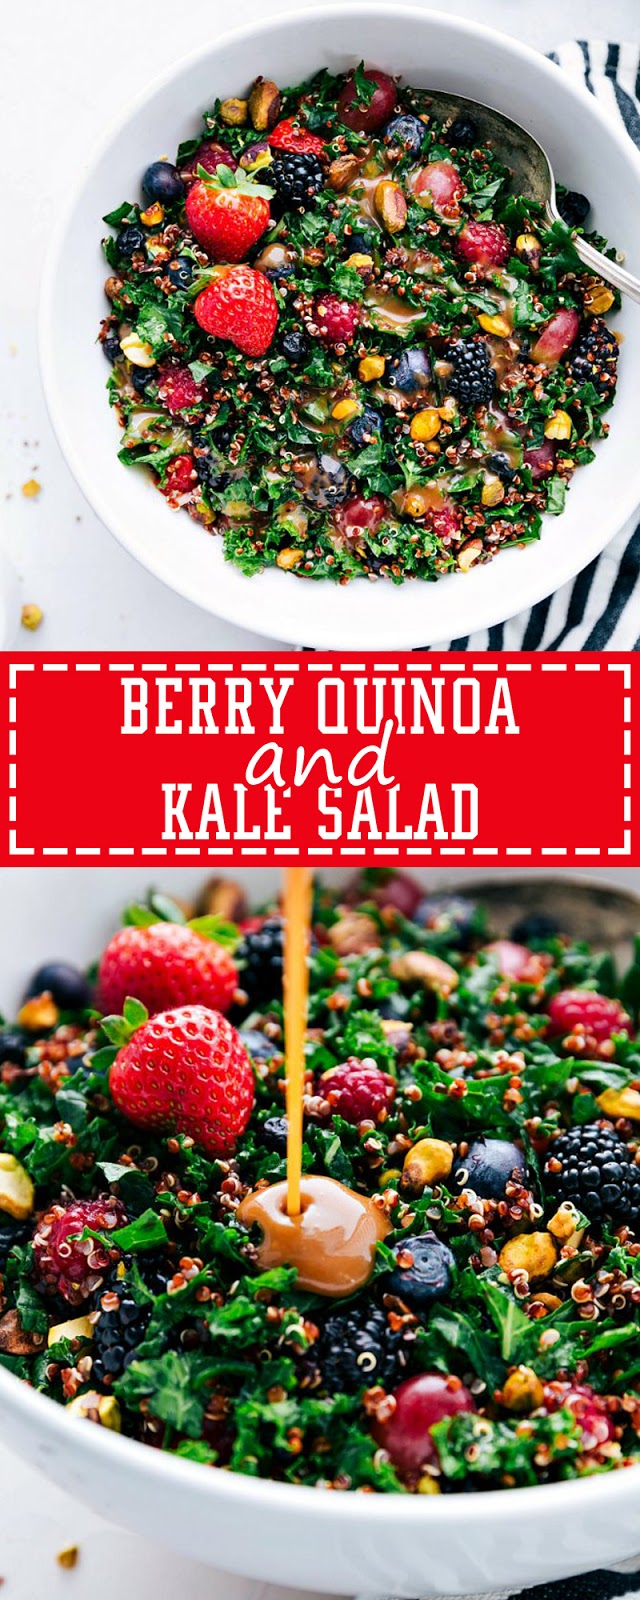 BERRY QUINOA AND KALE SALAD